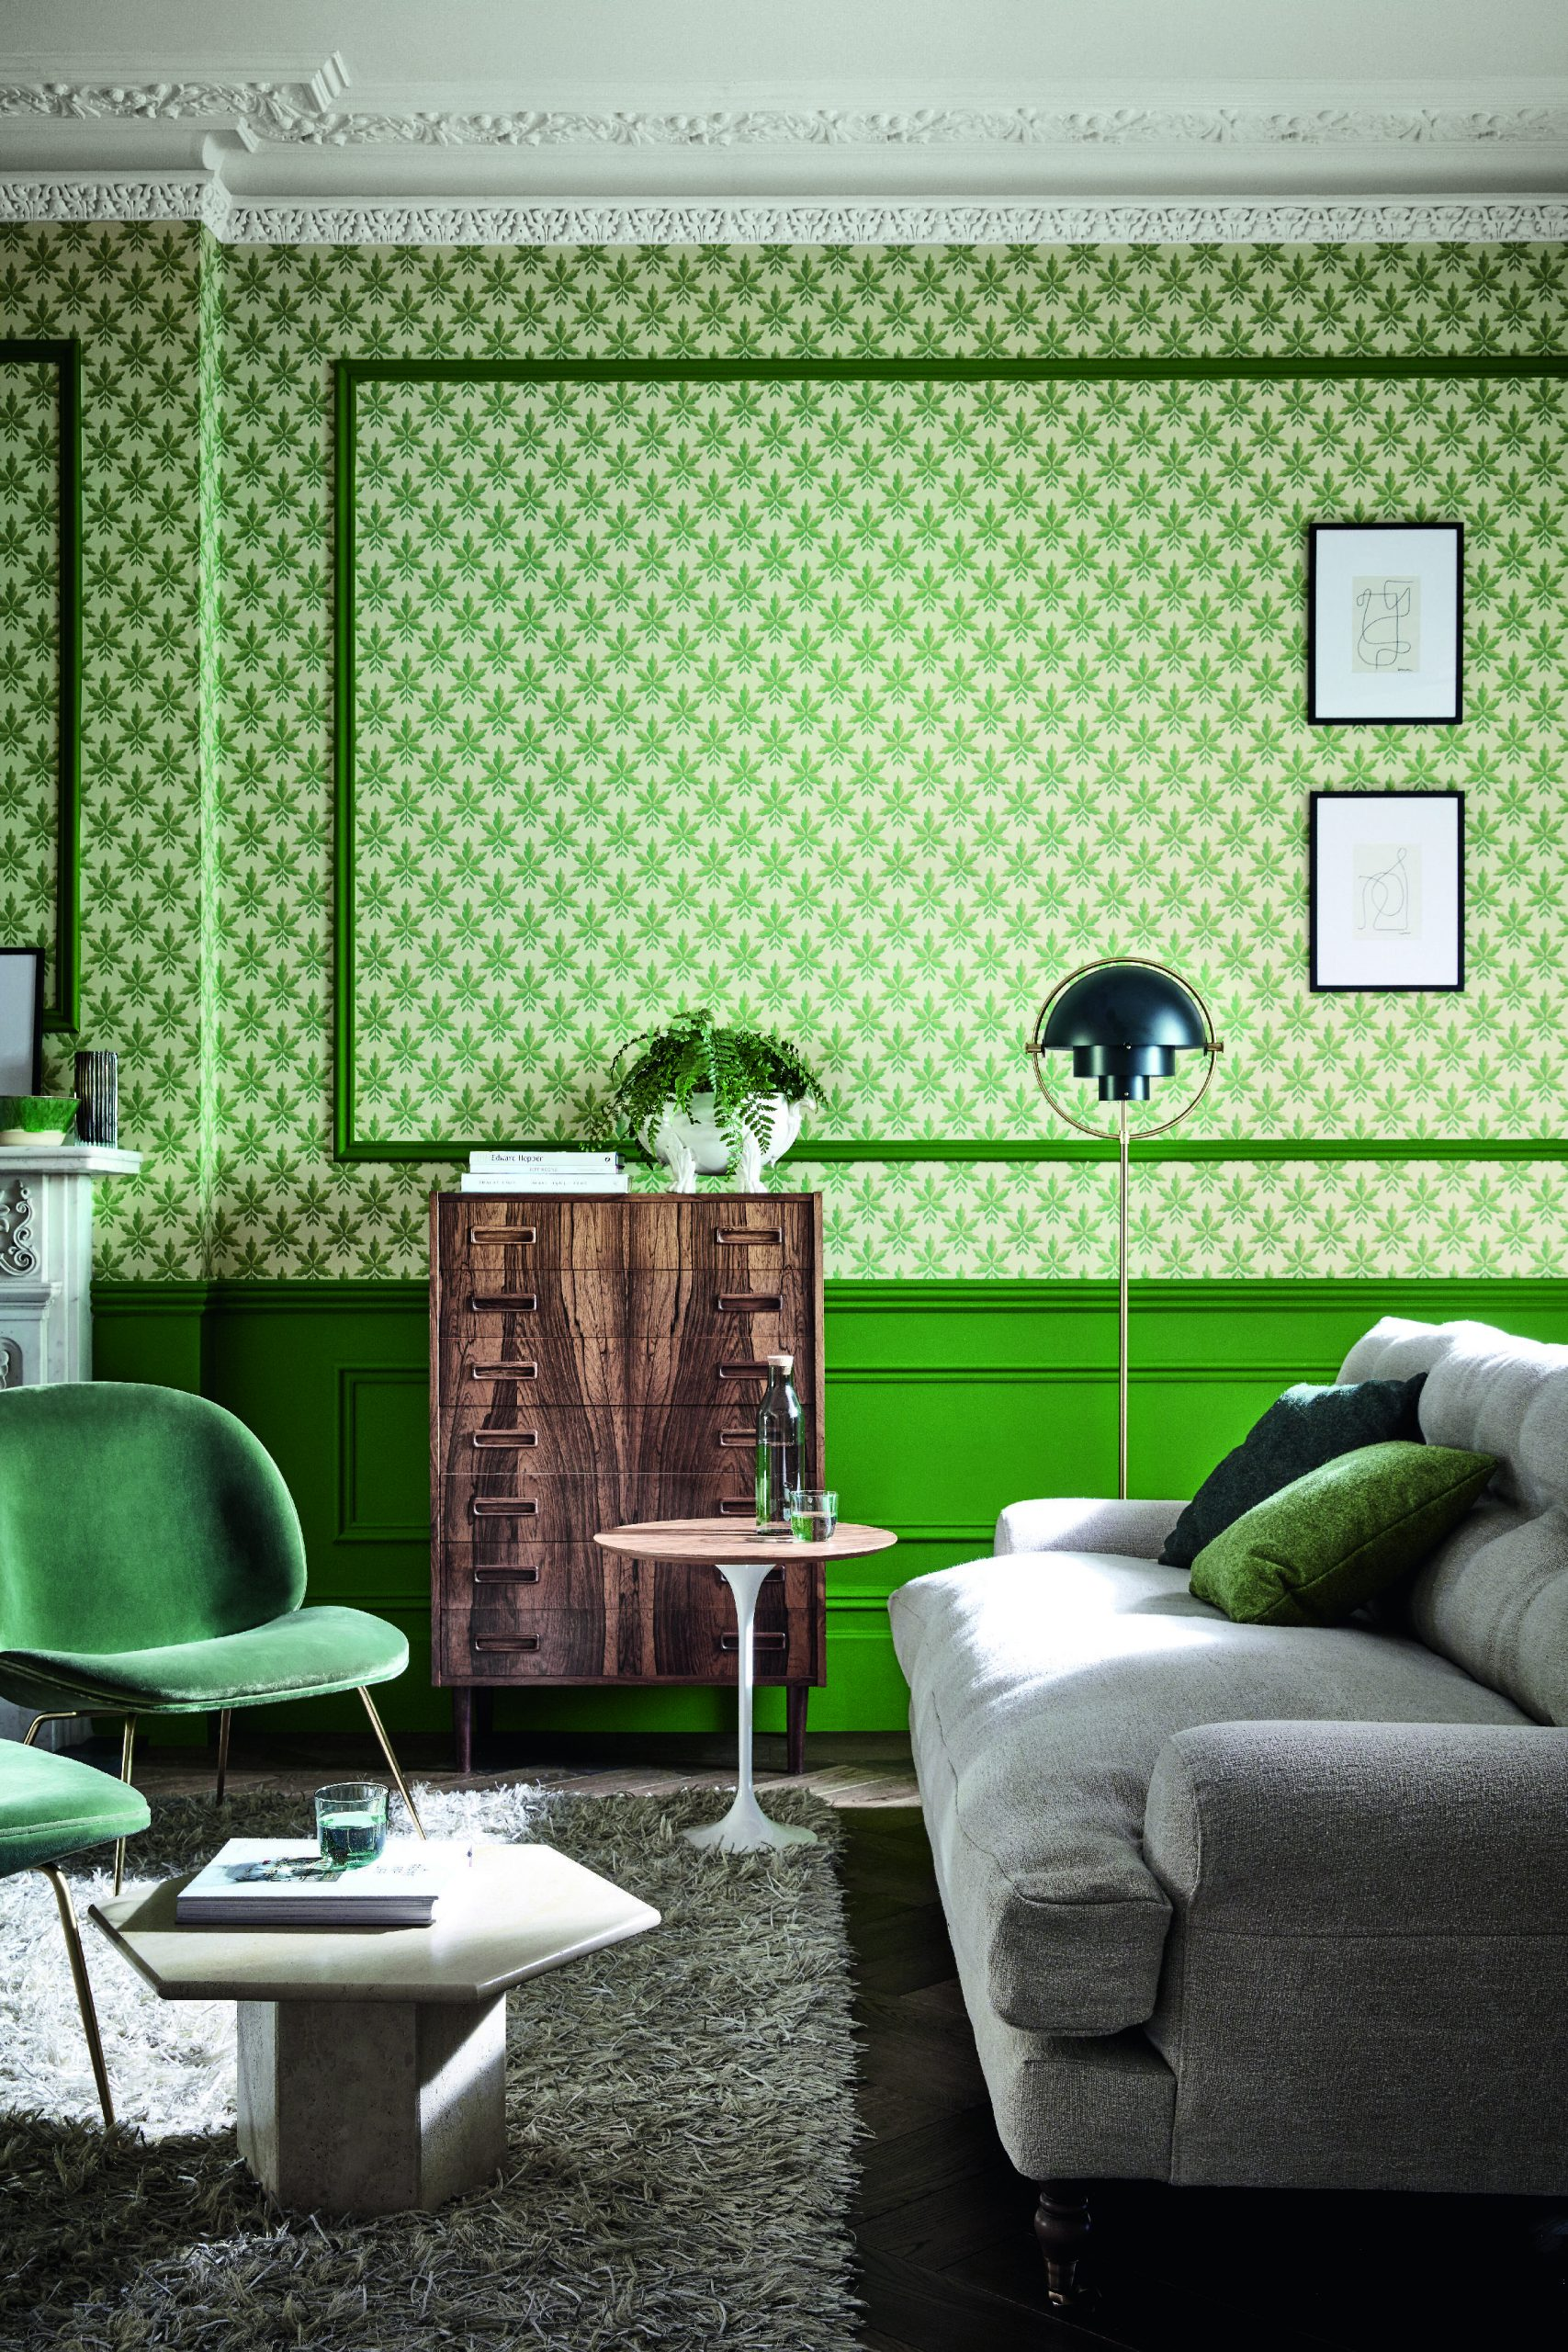 Wallpaper Ideas The Most Chic And Stylish New Looks Livingetc